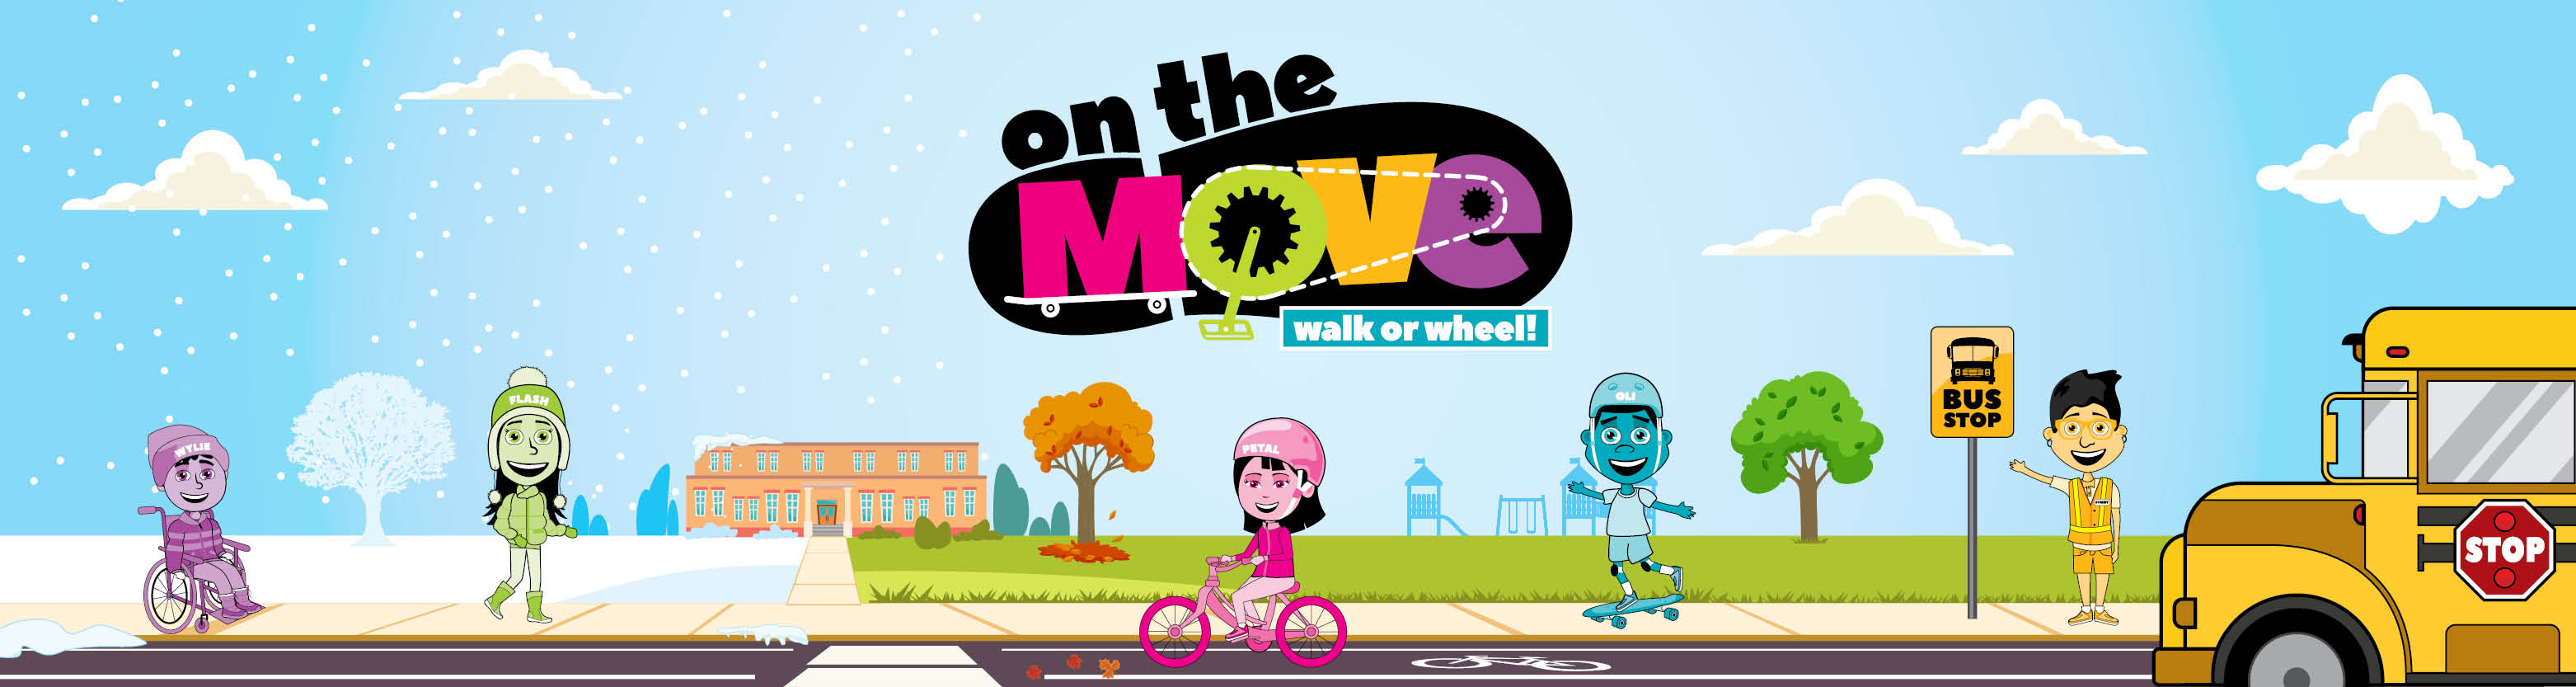 On The Move 3 Season Banner with logo and characters